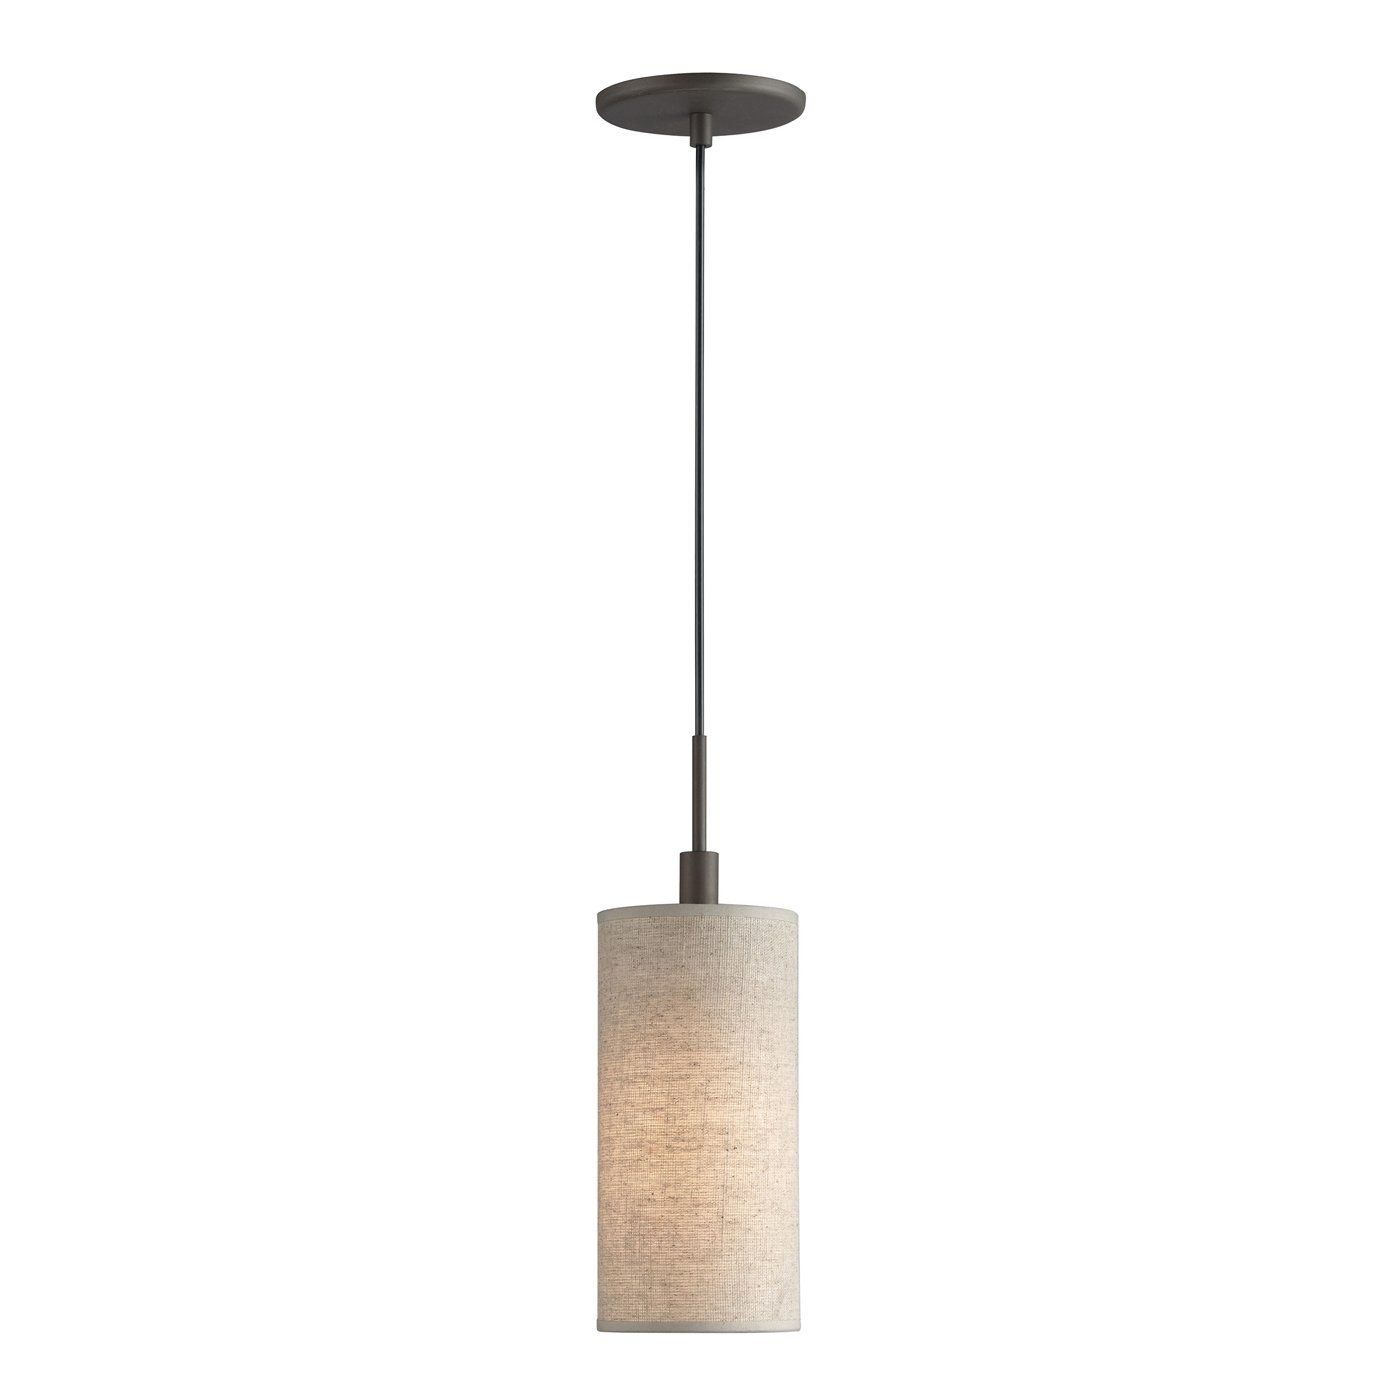 Woodbridge Lighting 13423 1 Light Mini Pendant With Fabric Shade